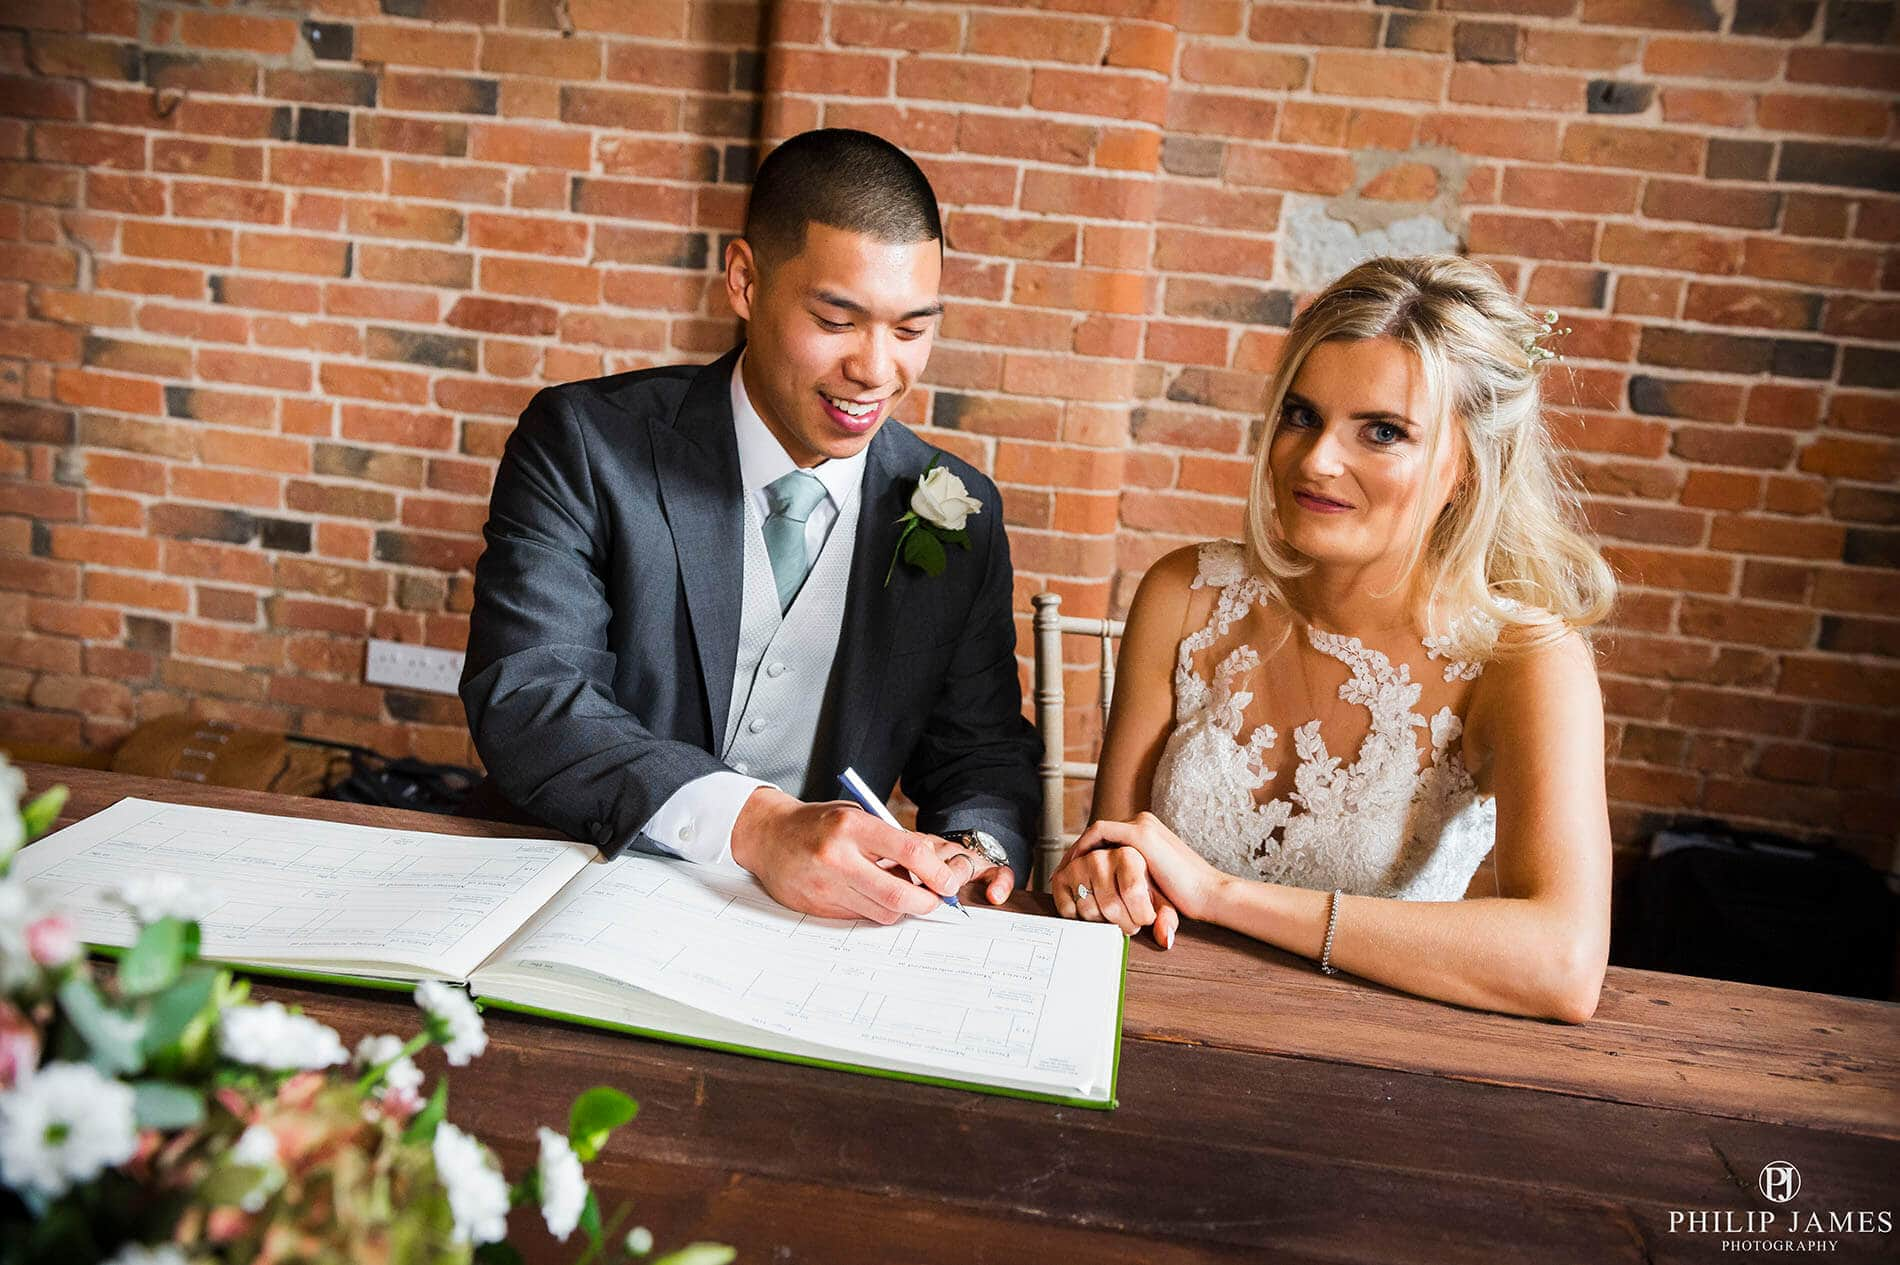 Stratford Park Wedding Photographer - Philip James covers Birmingham, The West Midlands, Solihull and Destination weddings. Wedding photography Birmingham is my passion